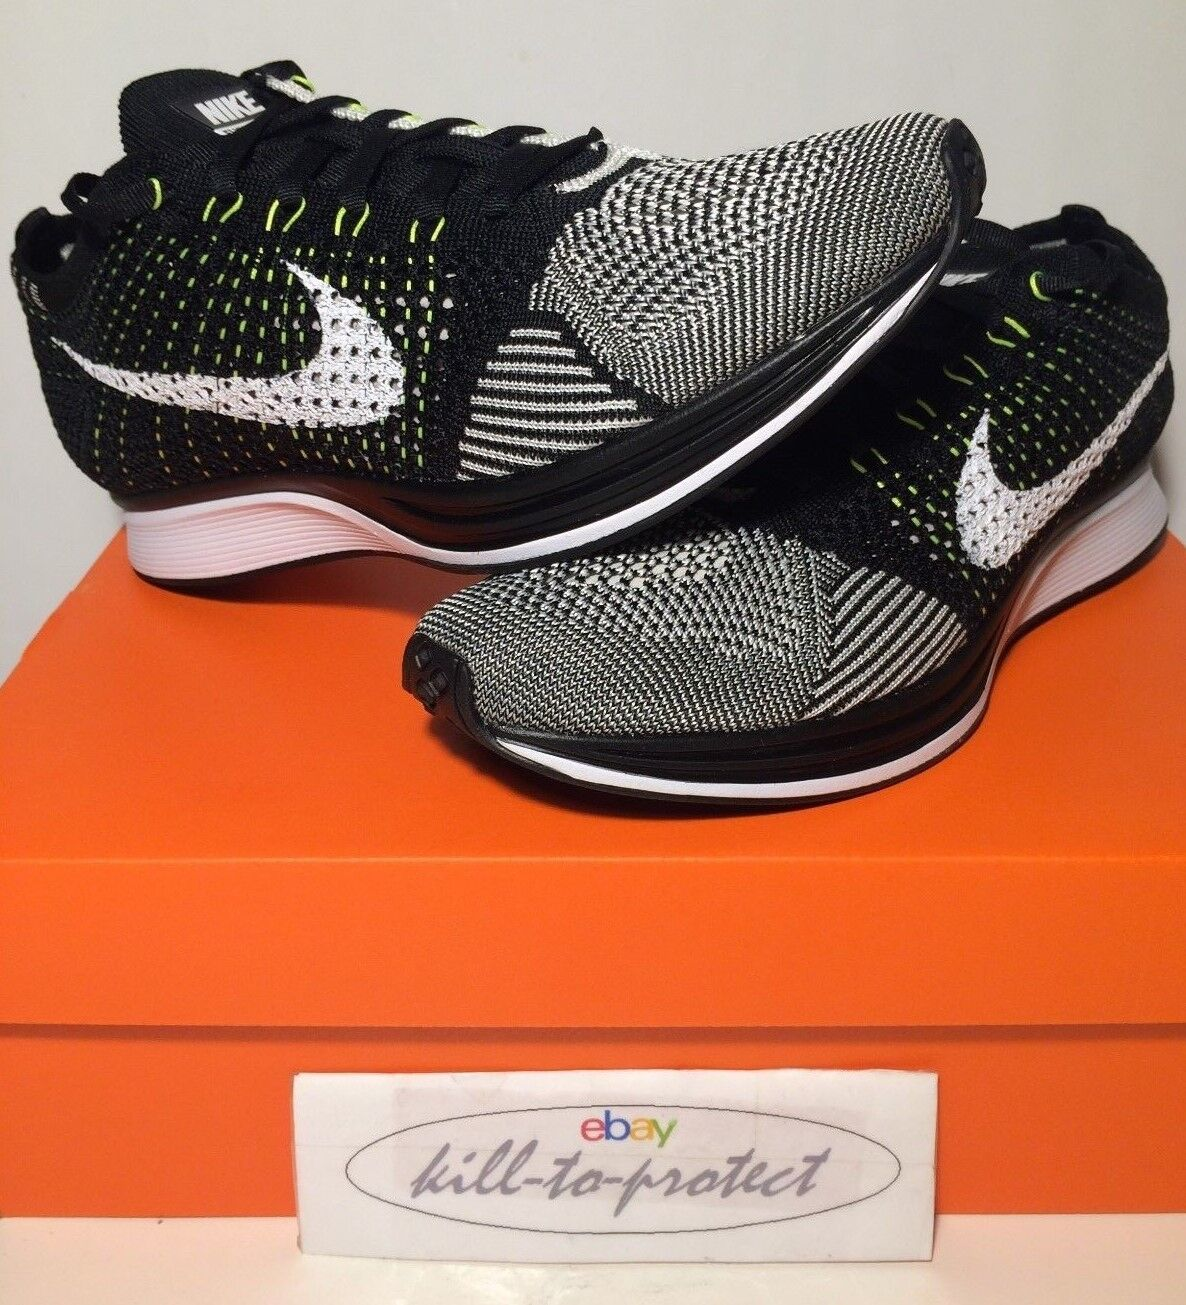 NIKE FLYKNIT RACER BLACK WHITE US UK7 8 9 10 11 12 OREO 526628-011 OG HTM 2015